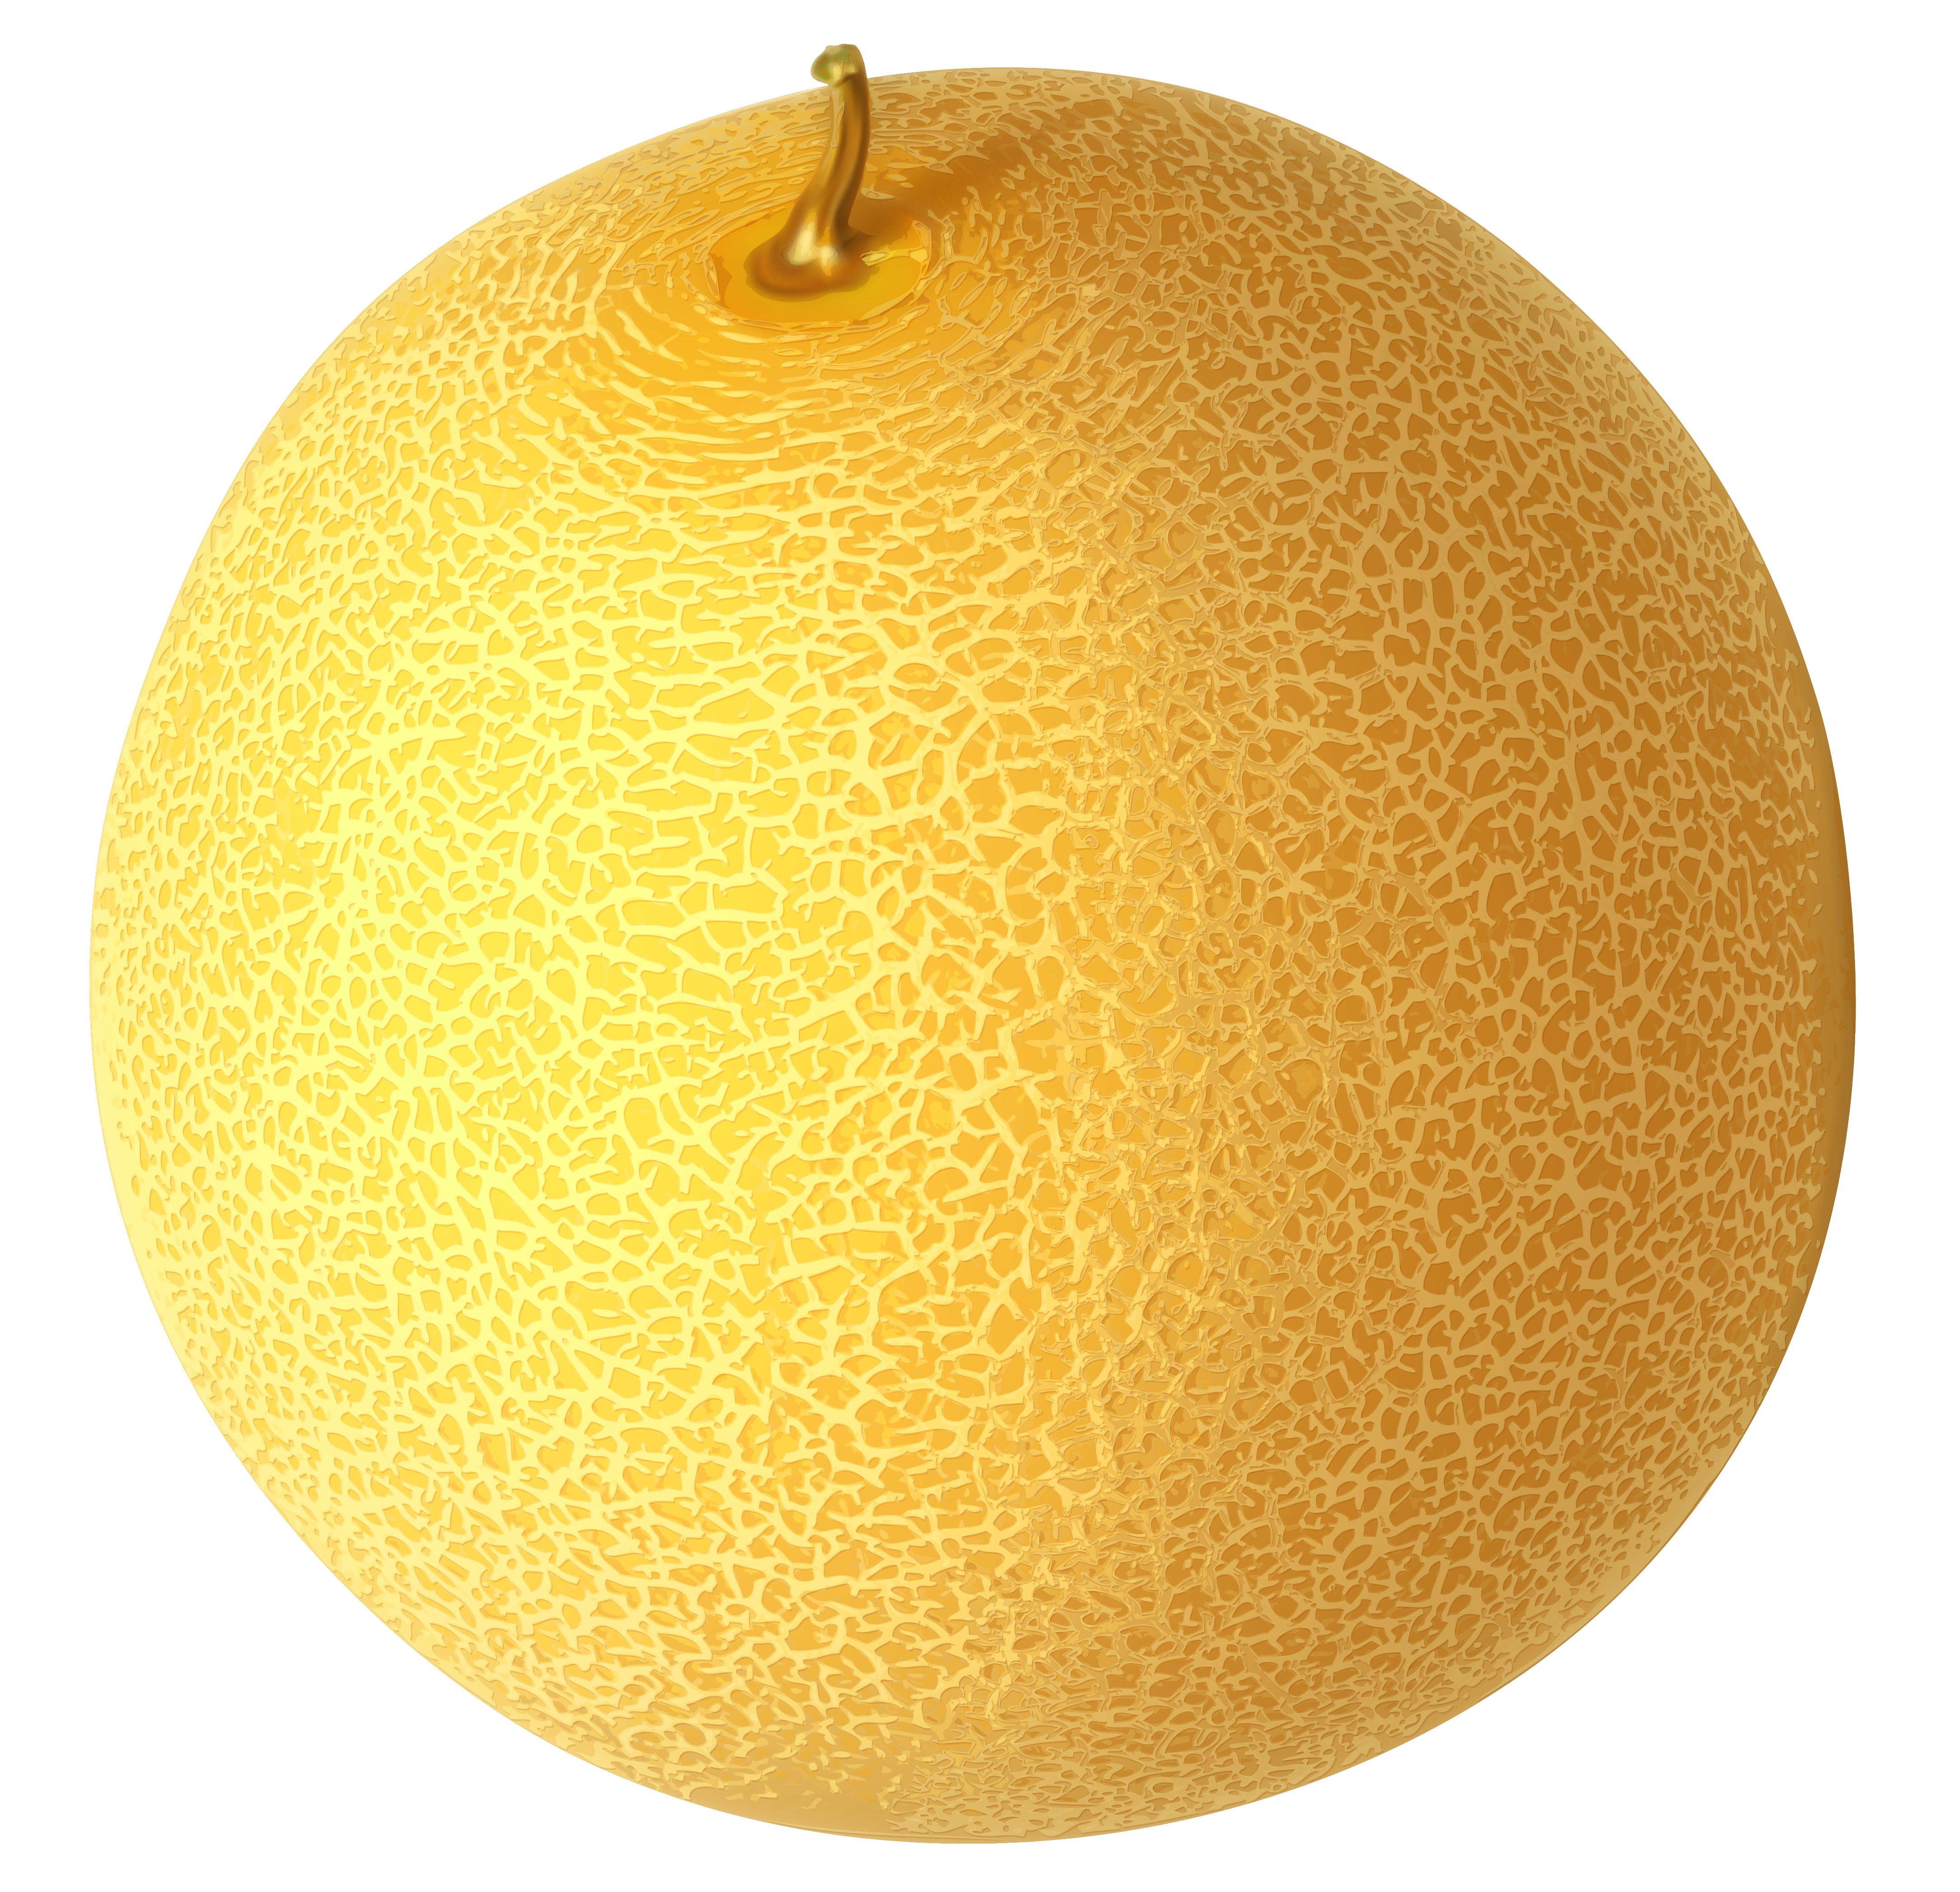 Cantaloupe clipart cartoon Clipart  size Picture Yopriceville